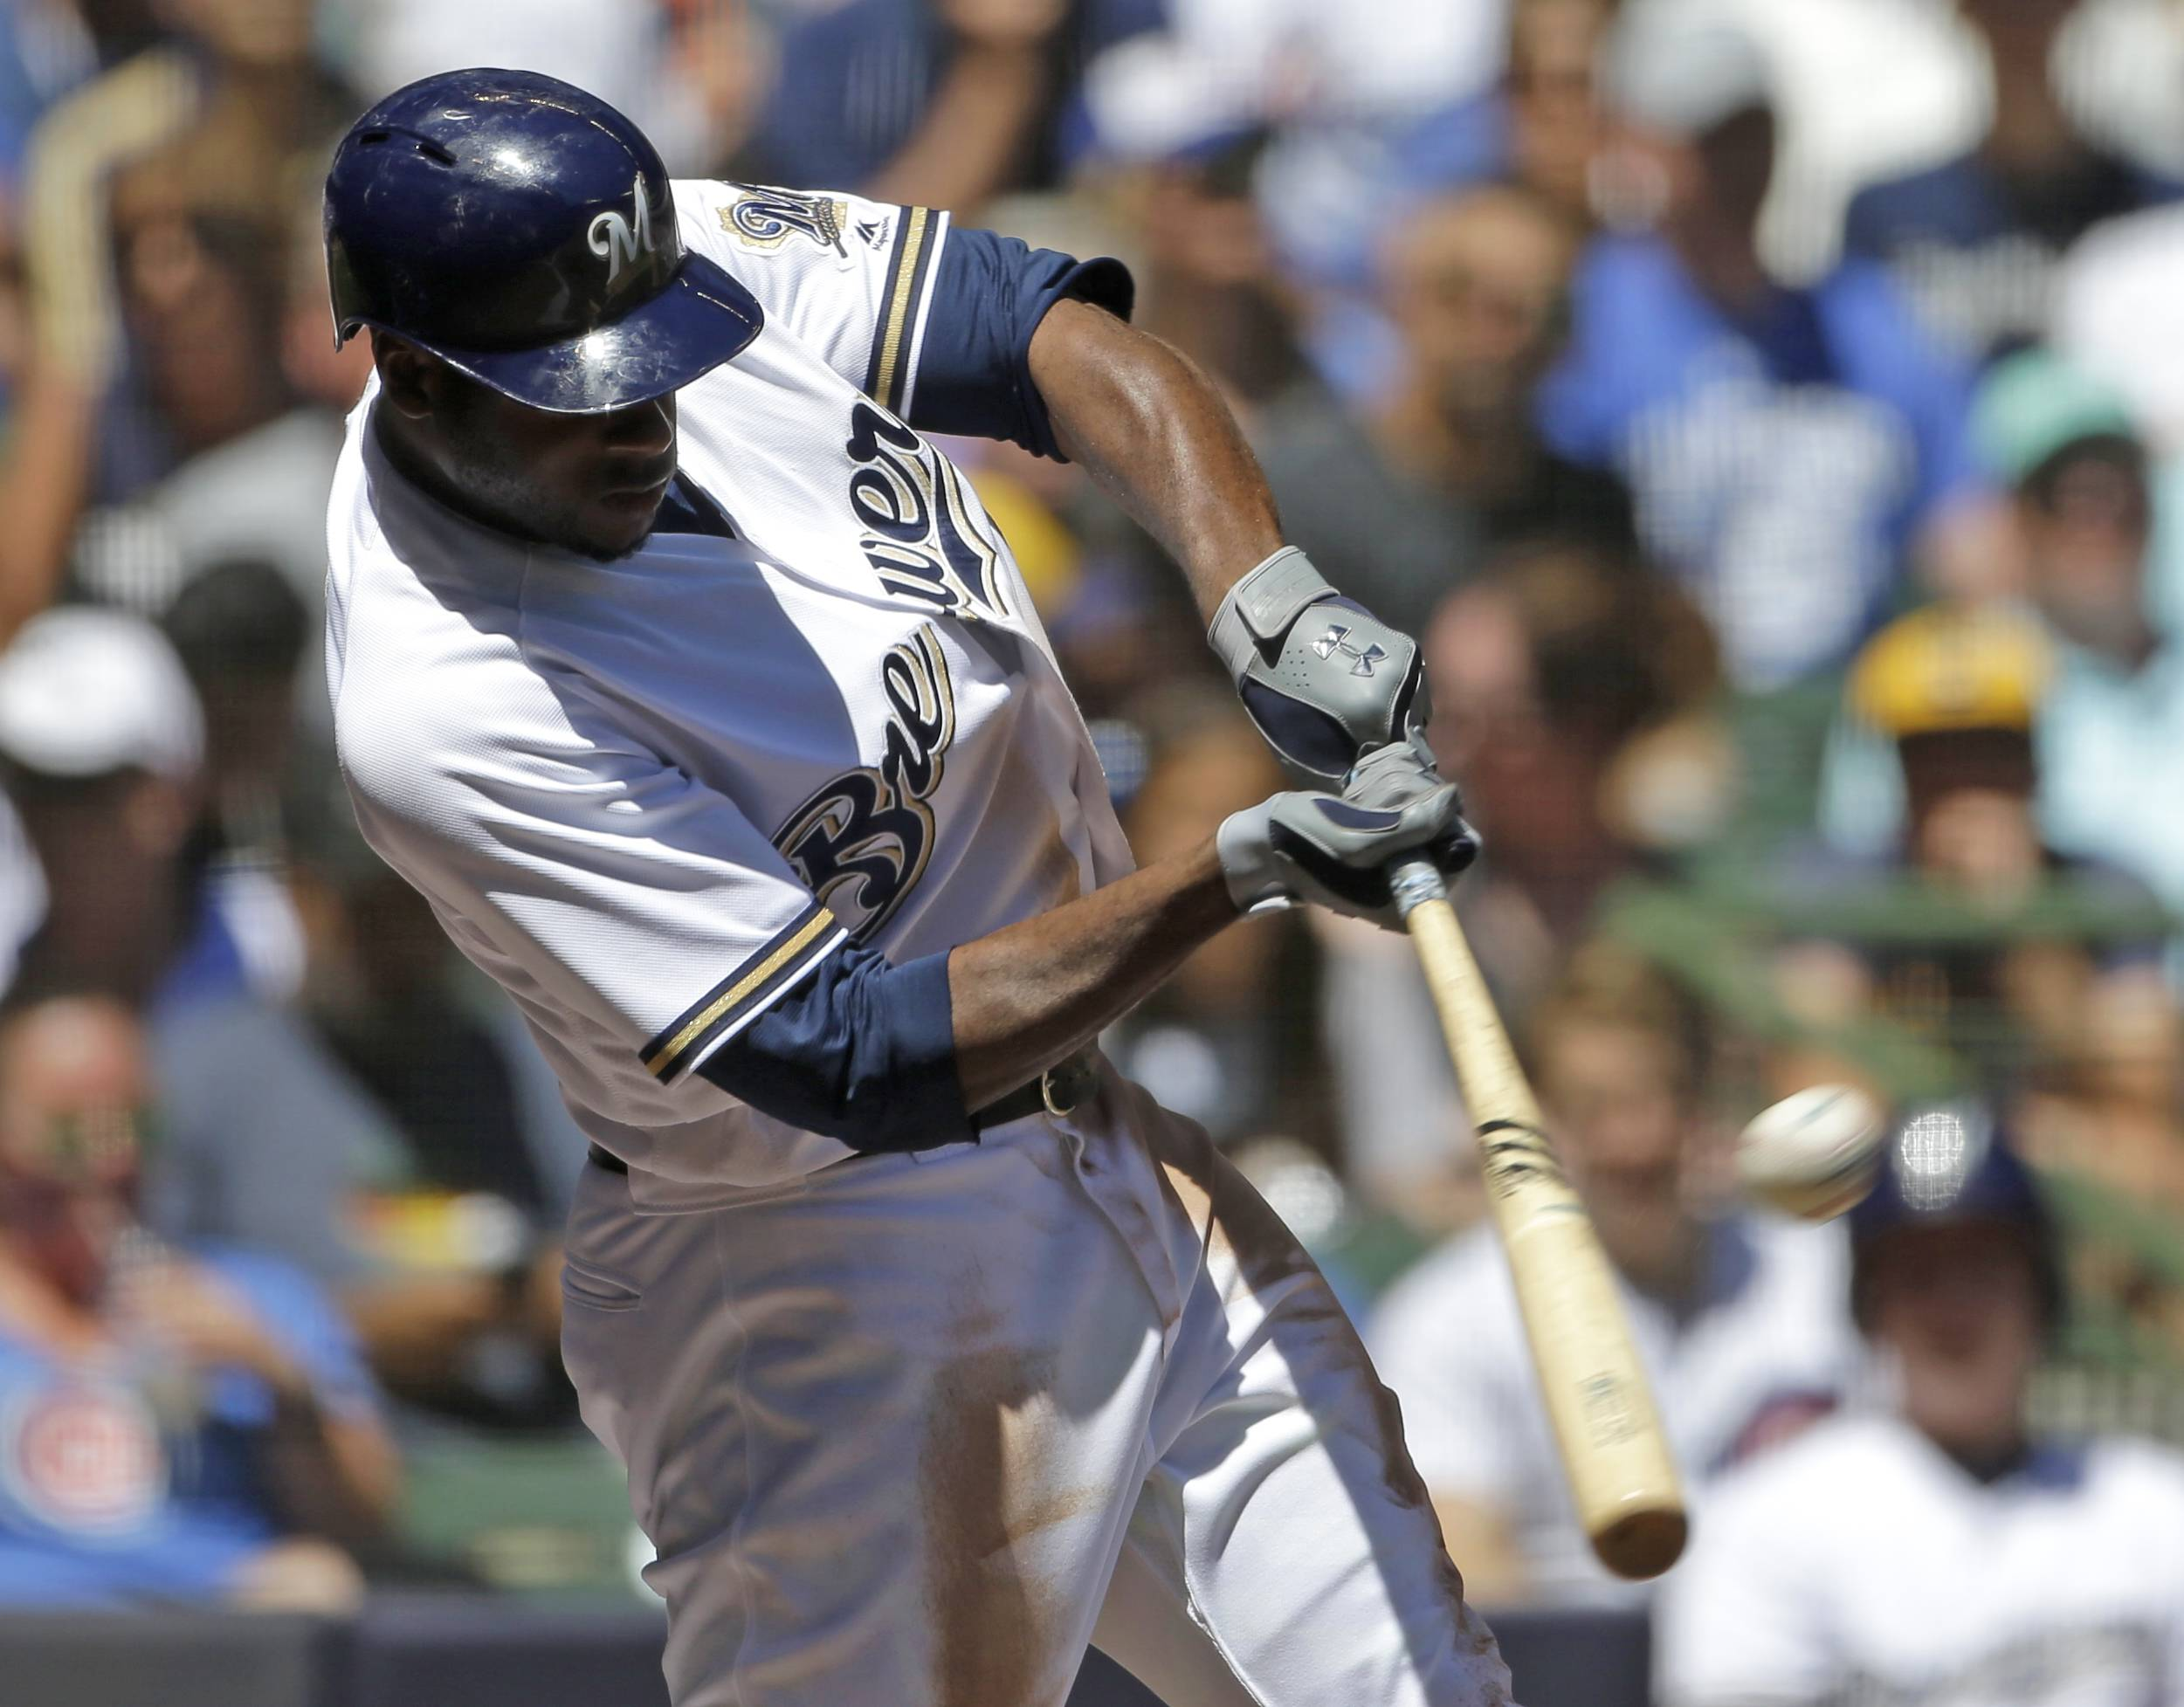 Milwaukee Brewers' Lorenzo Cain hits a solo home run in the third inning Wednesday against the Chicago Cubs at Miller Park.